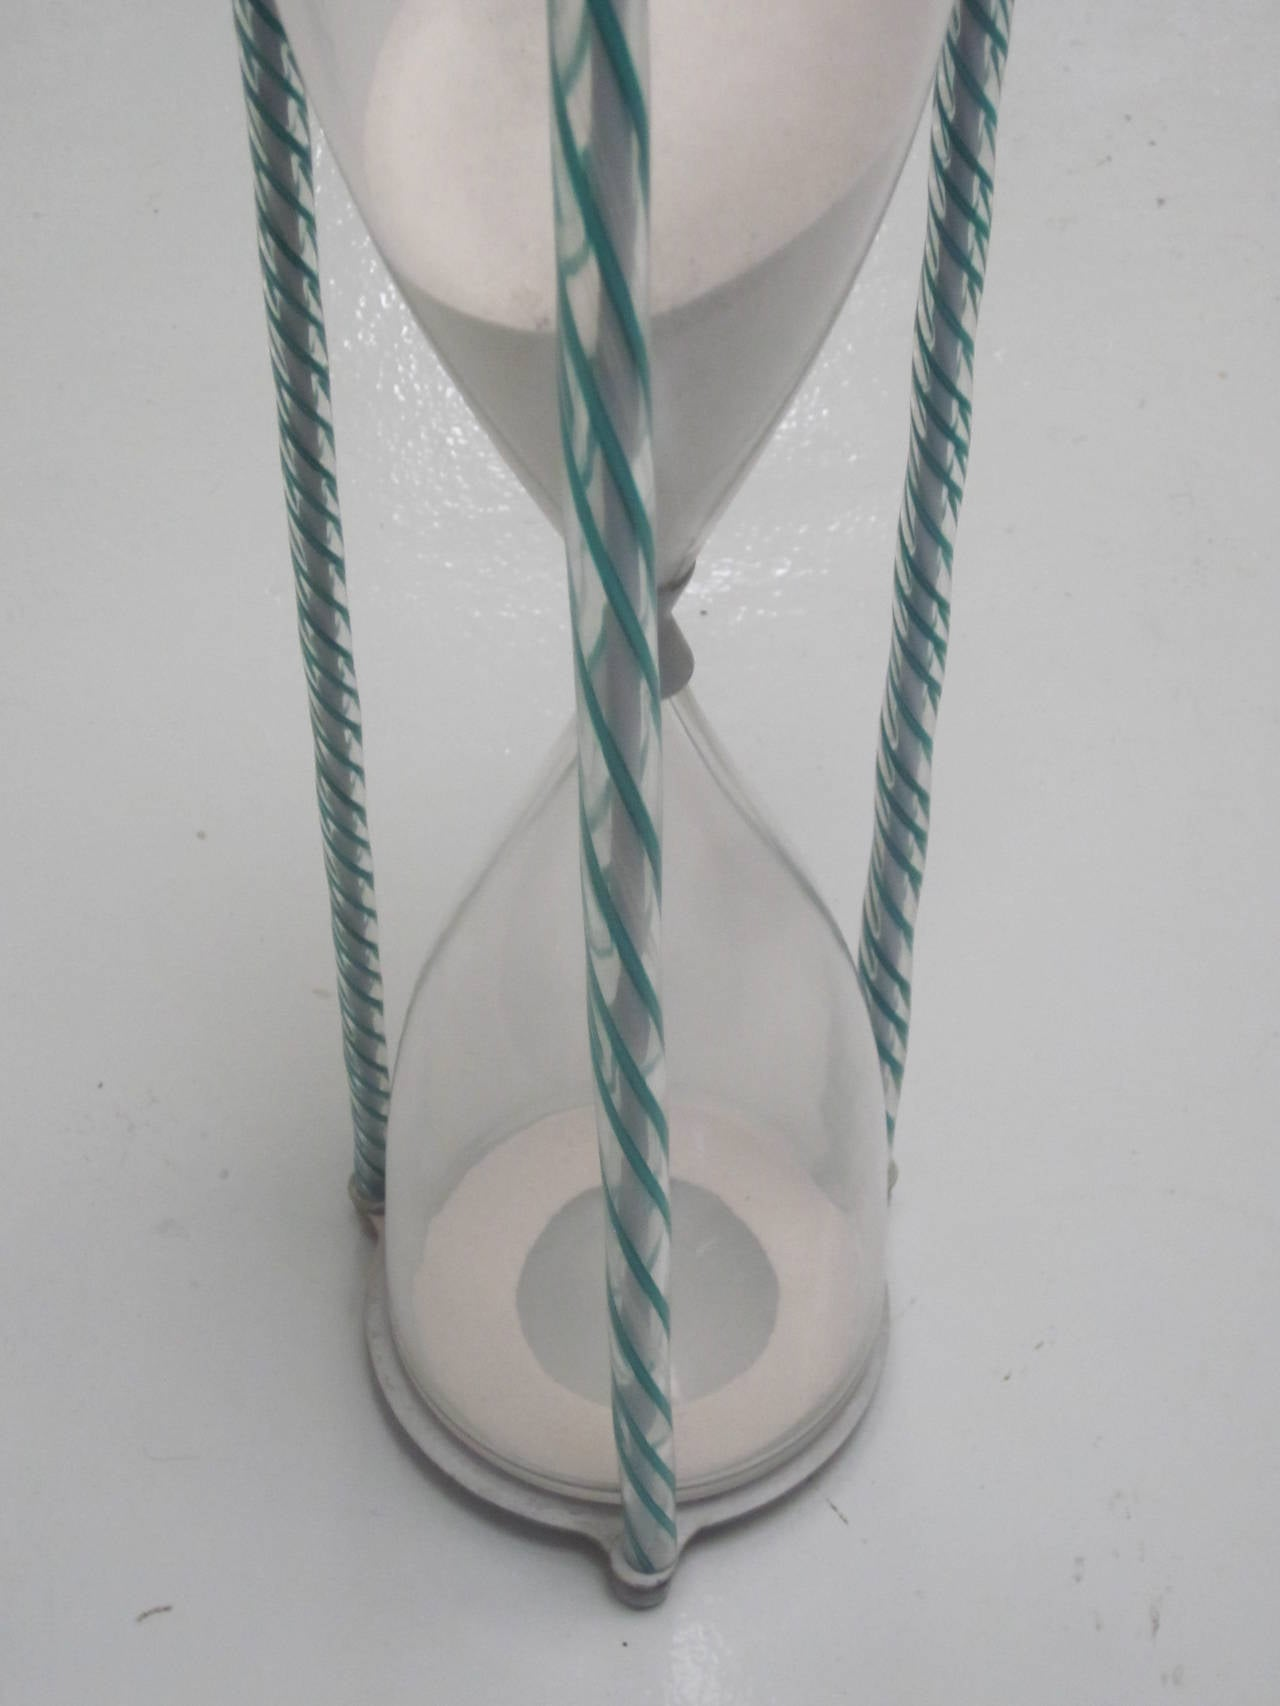 Handblown Murano Glass Hourglass by Paolo Venini 3